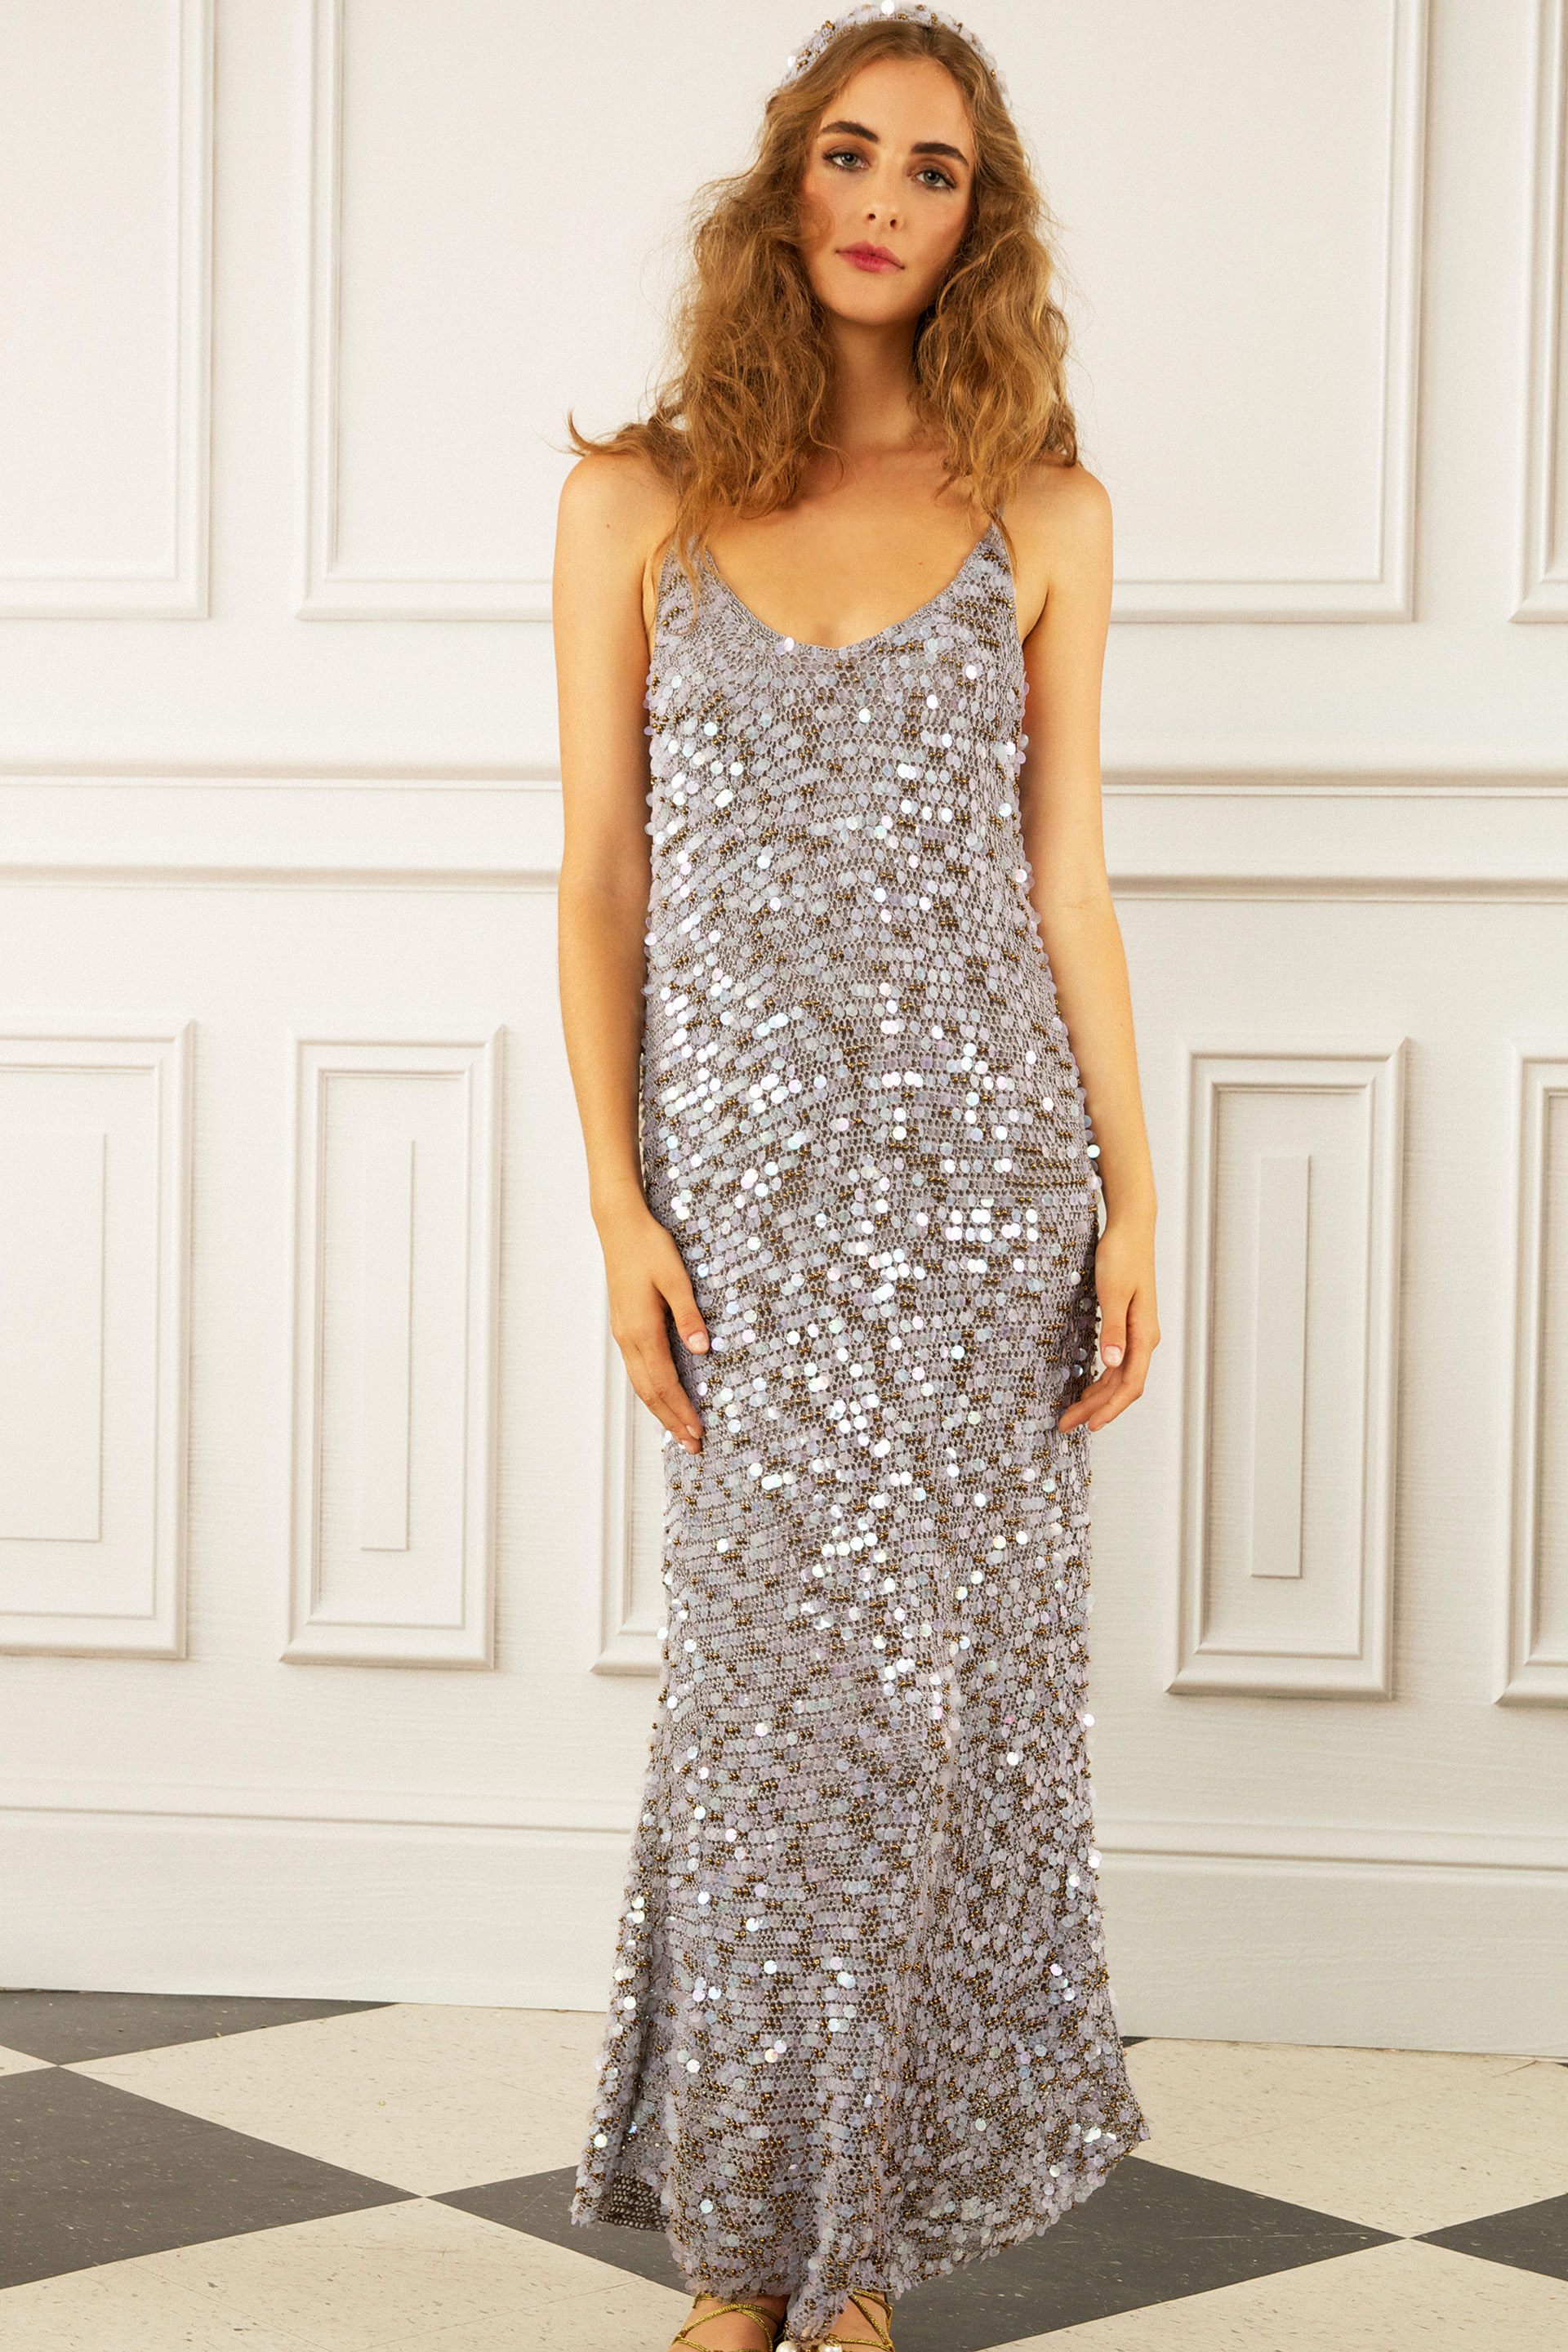 maria korovilas wedding dress spring 2017 silver metallic long